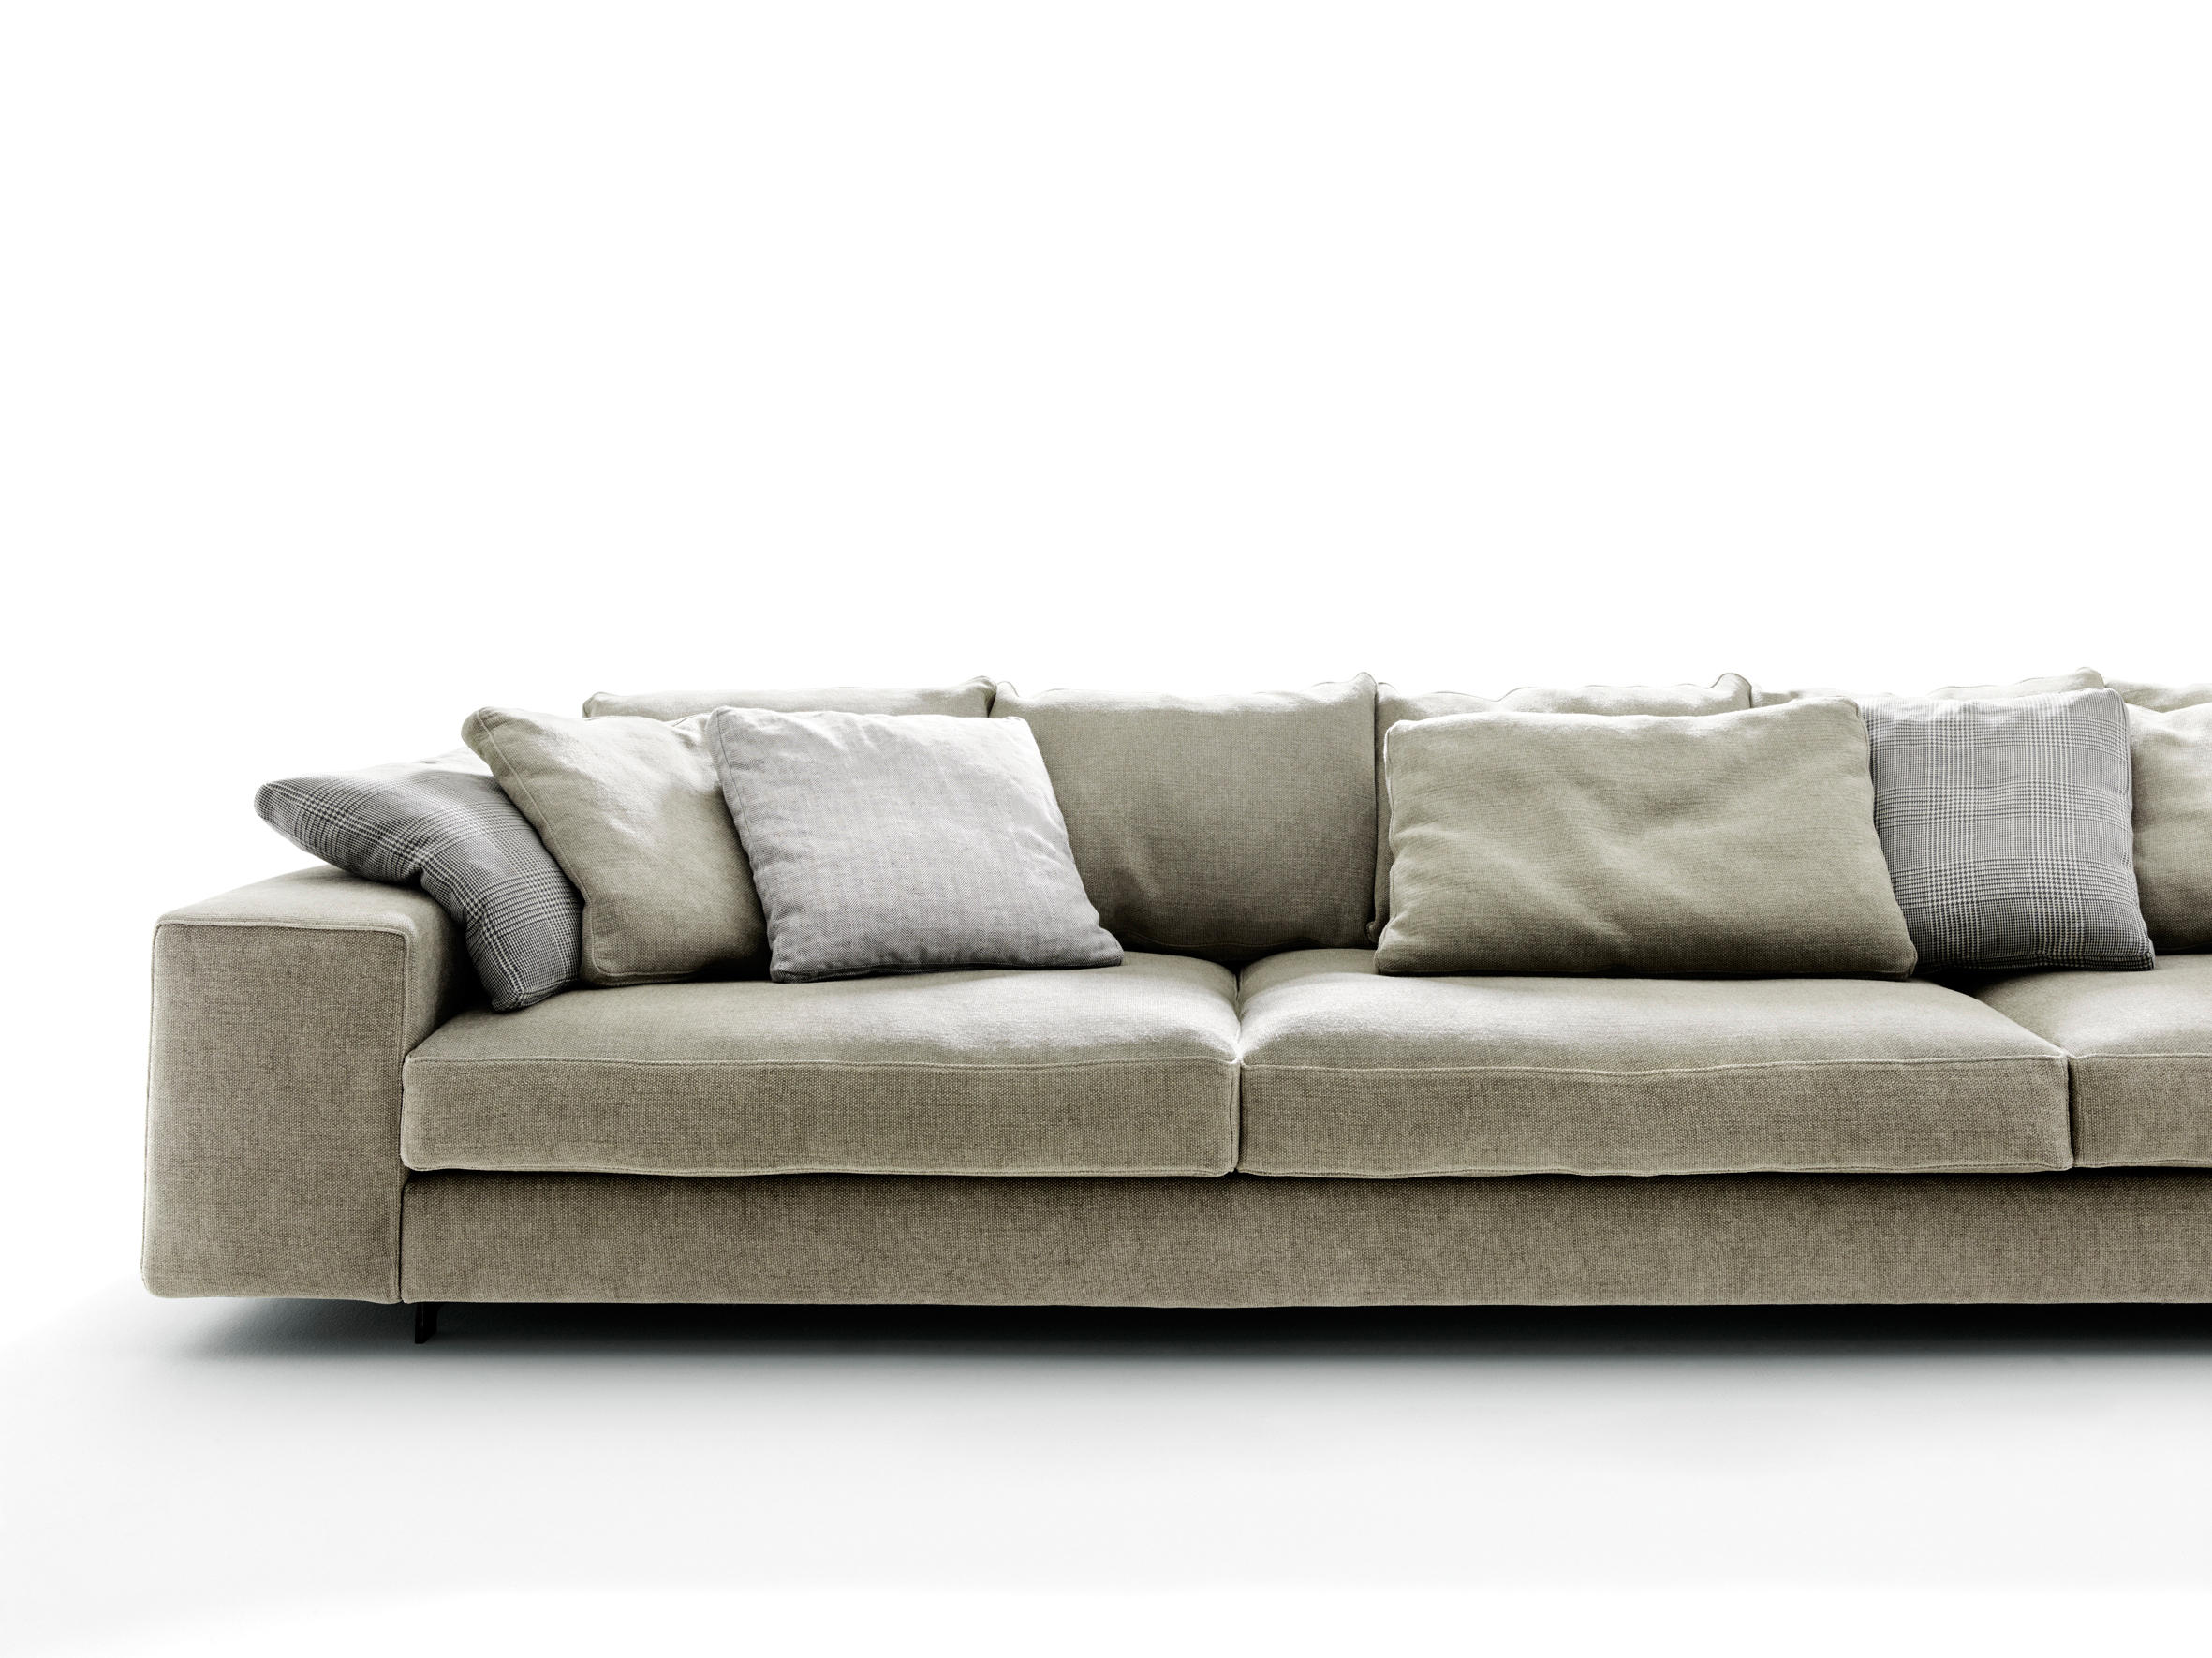 LANDSCAPE - Lounge sofas from De Padova | Architonic